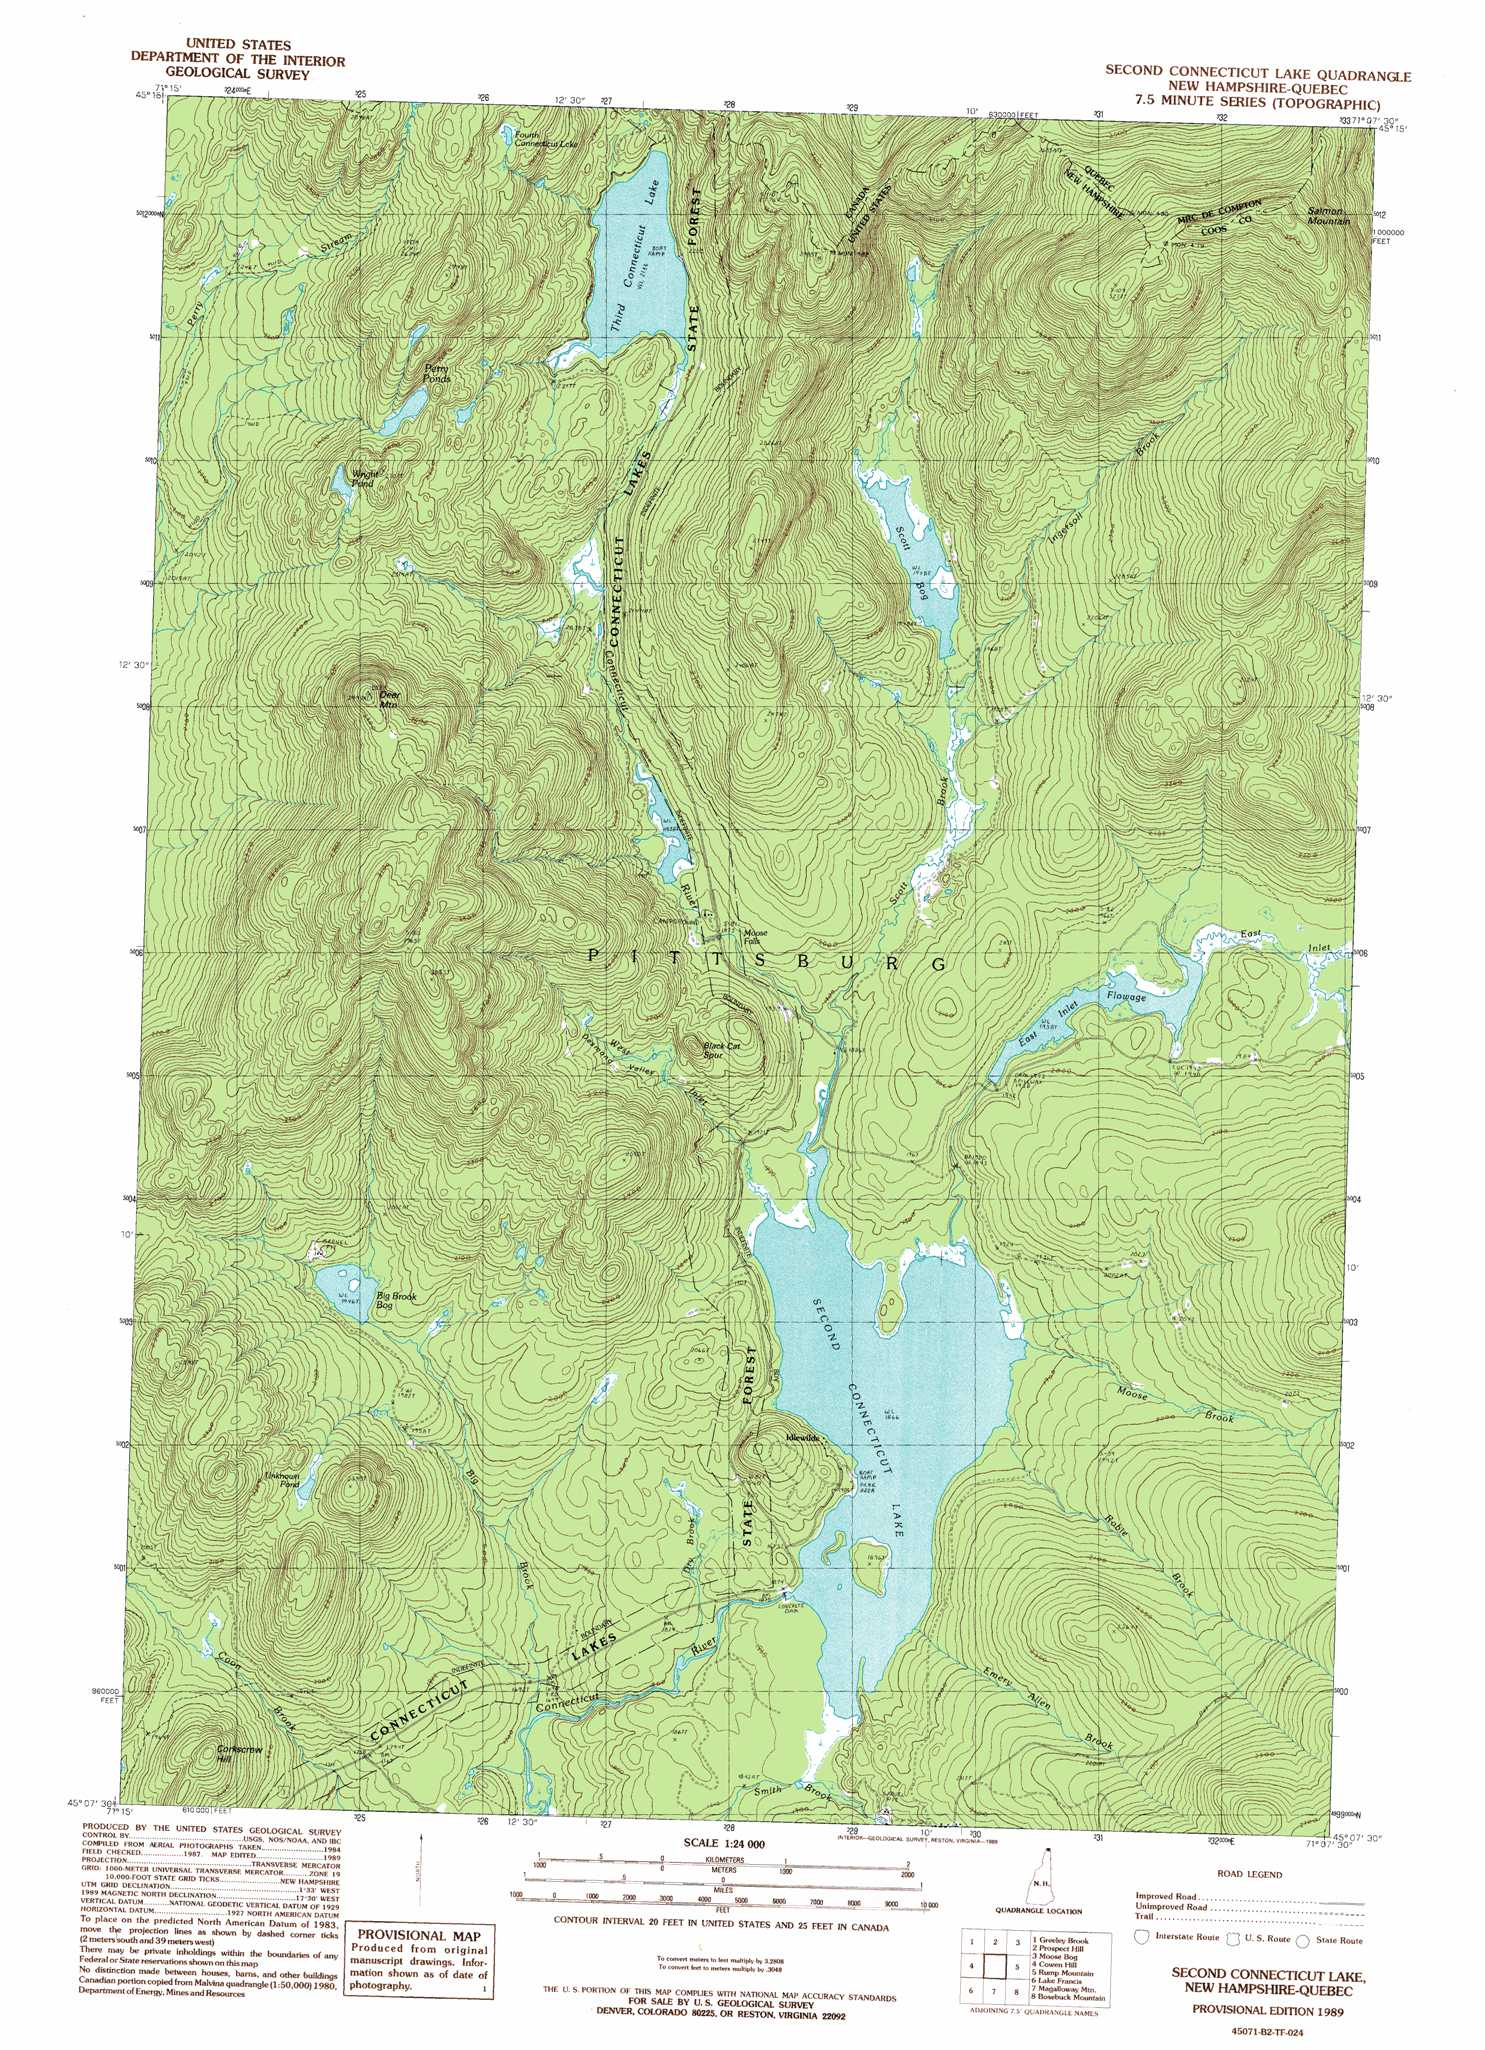 Second Connecticut Lake Topographic Map Nh Usgs Topo